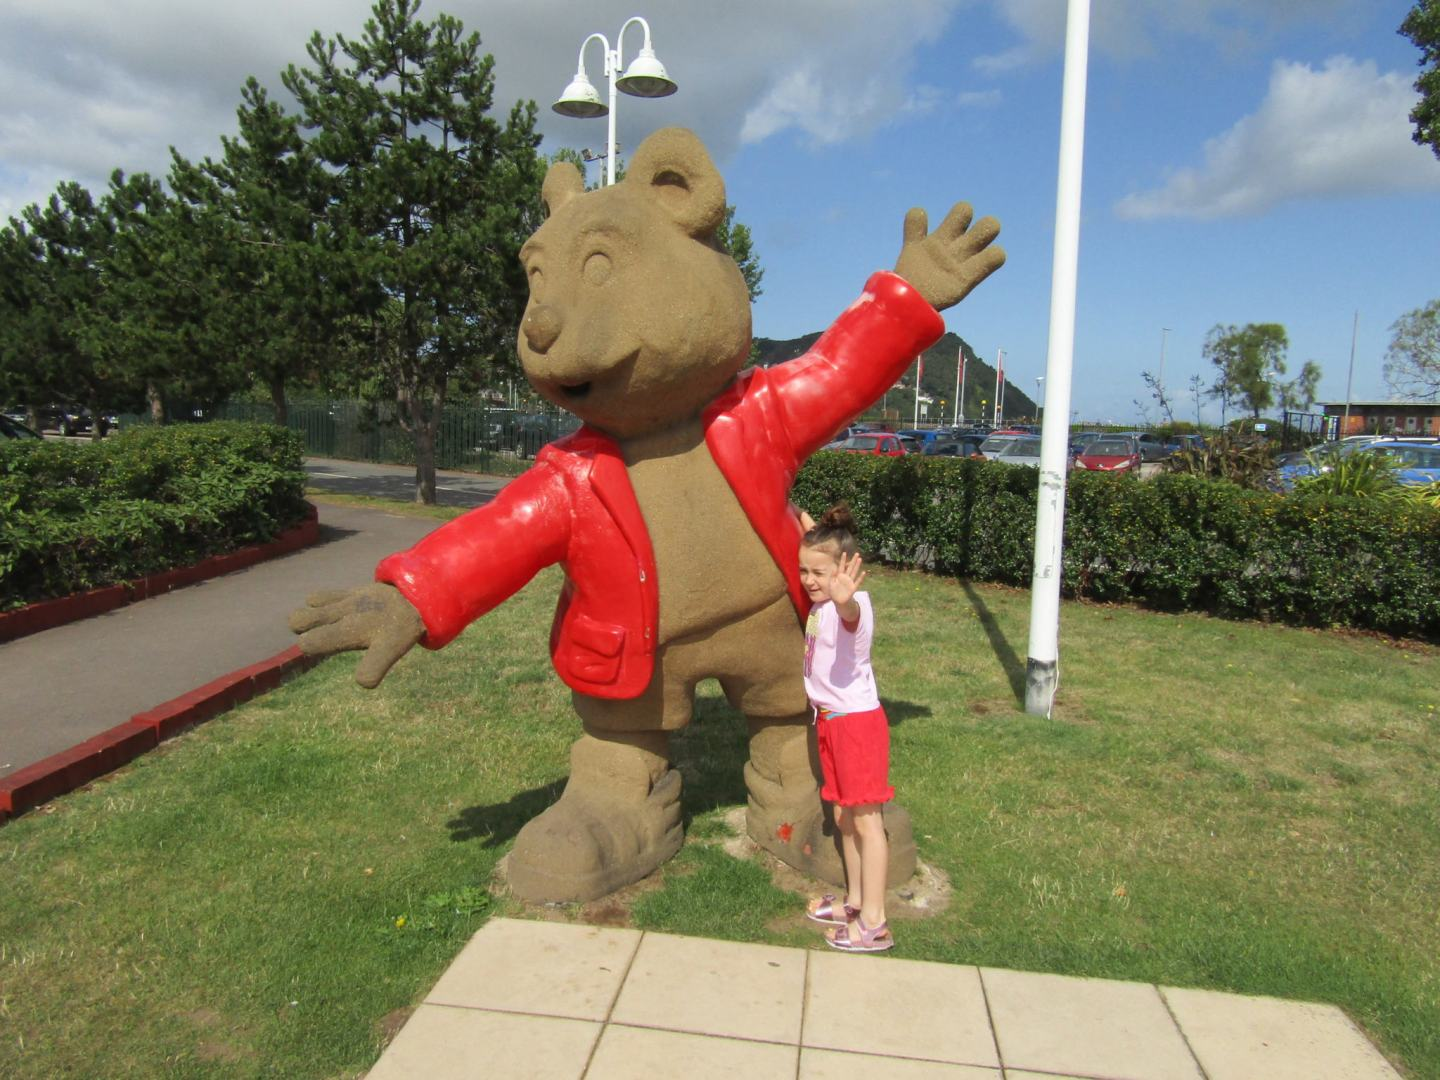 Butlins, Minehead. Summer Family Road Trip. Part 1